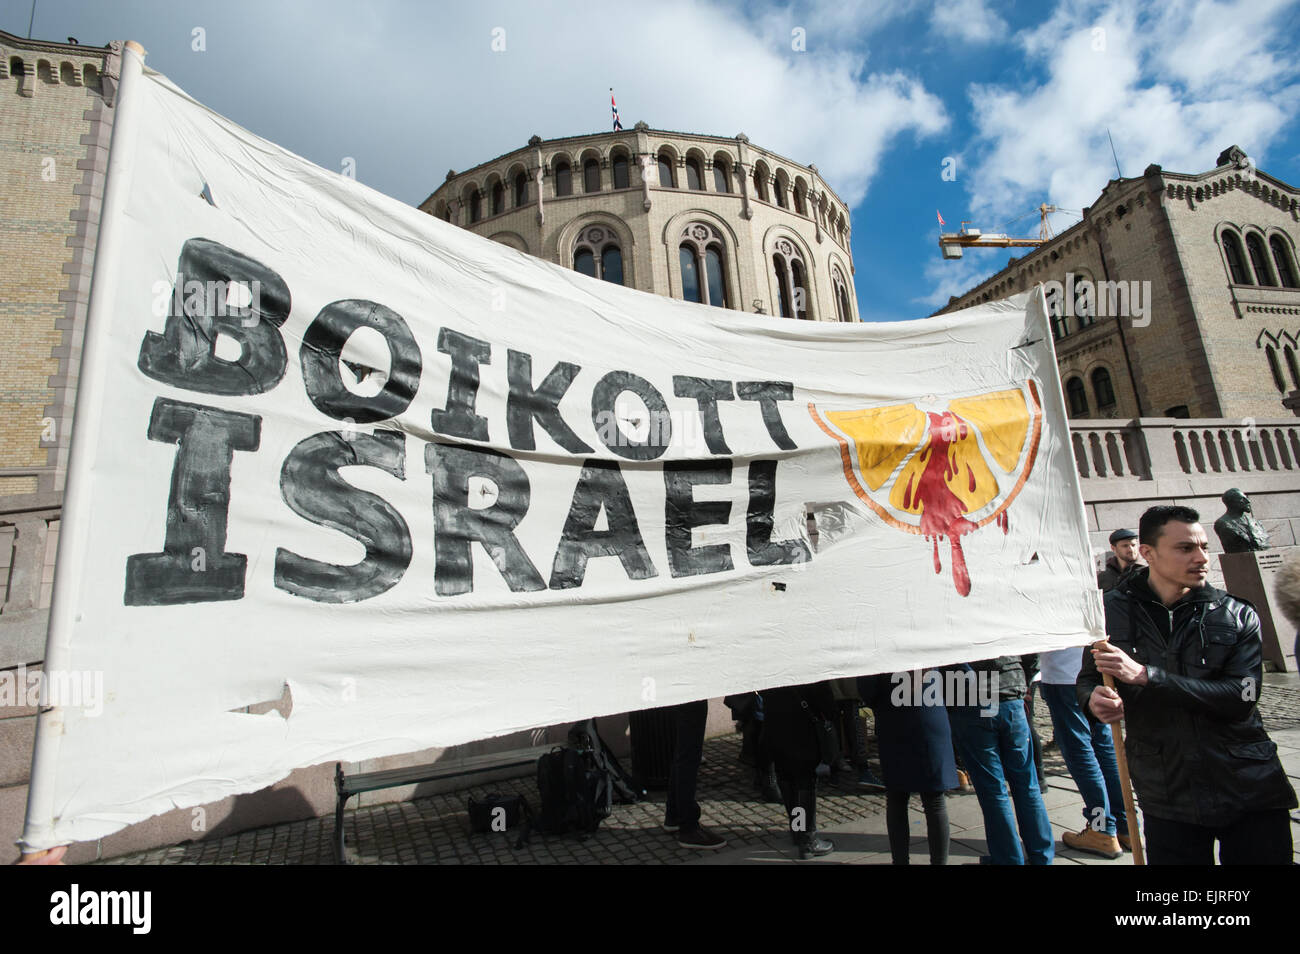 Solidarity activists hold a banner reading 'Boycott Israel' during a protest in front of the Norwegian Parliament - Stock Image